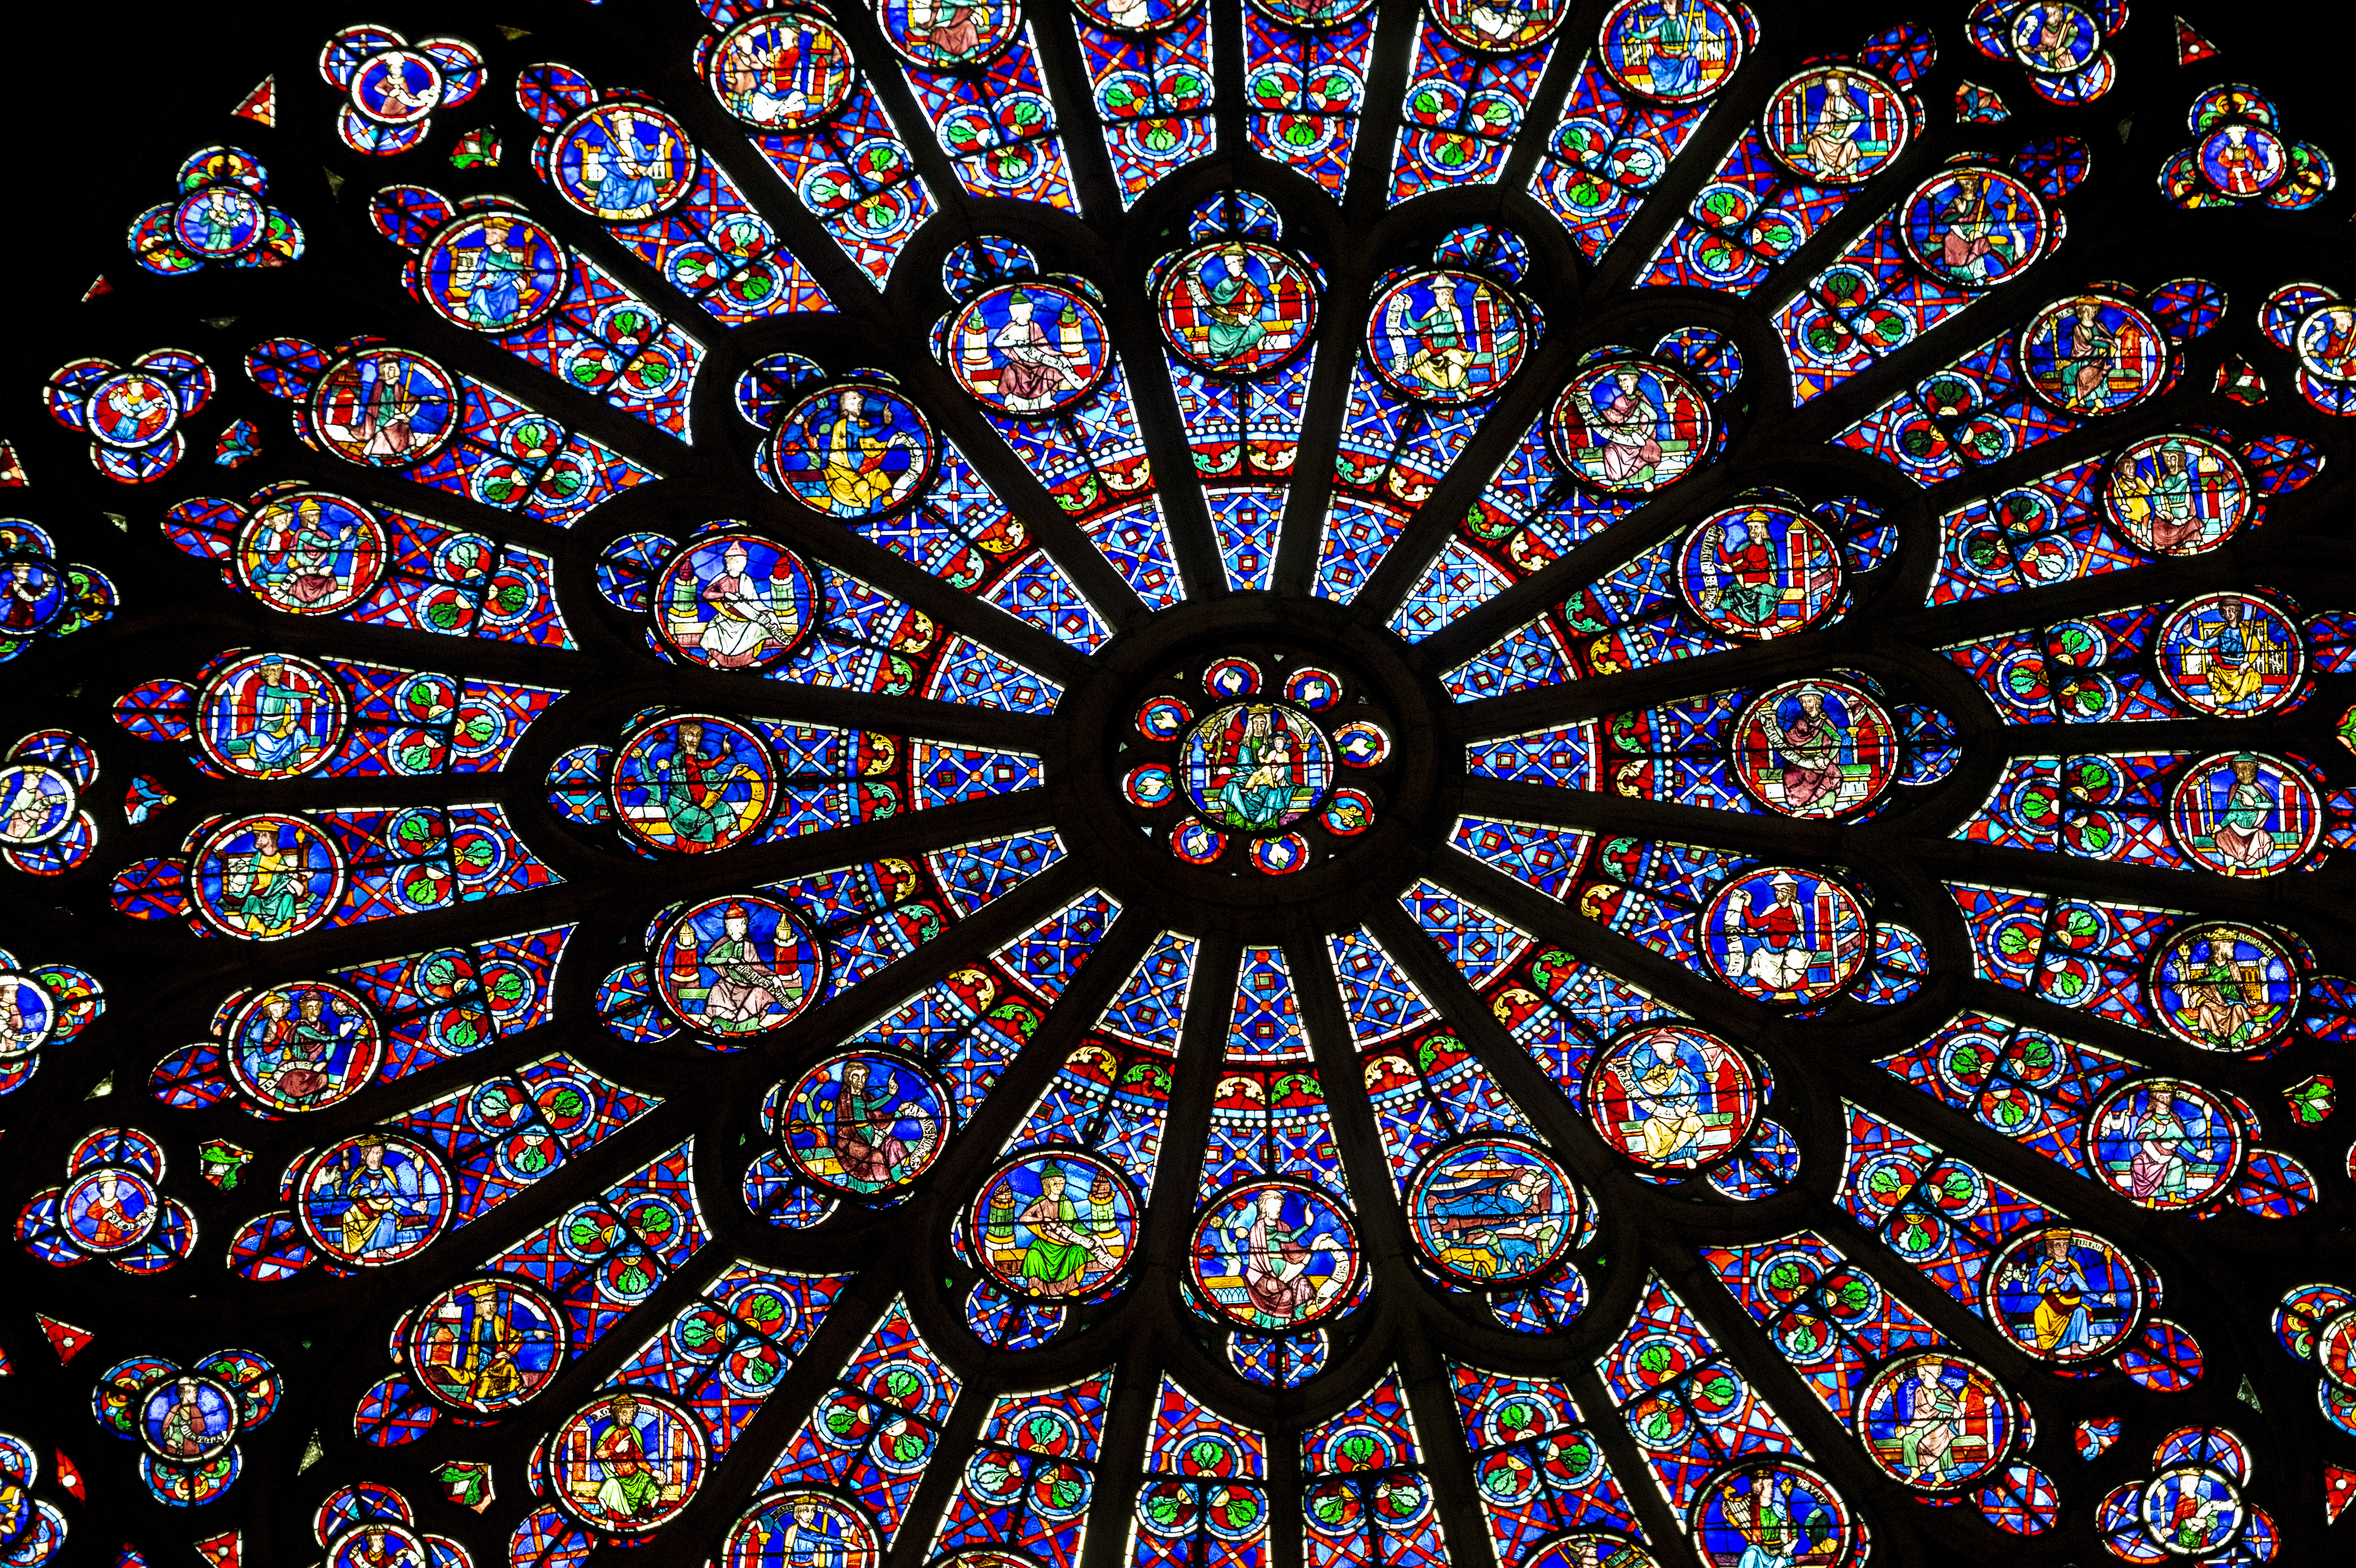 Interior of the Notre Dame de Paris cathedral with stained-glass windows, France. Notre Dame is one of the top tourist attractions in Paris. Inside the Gothic landmark of Paris.